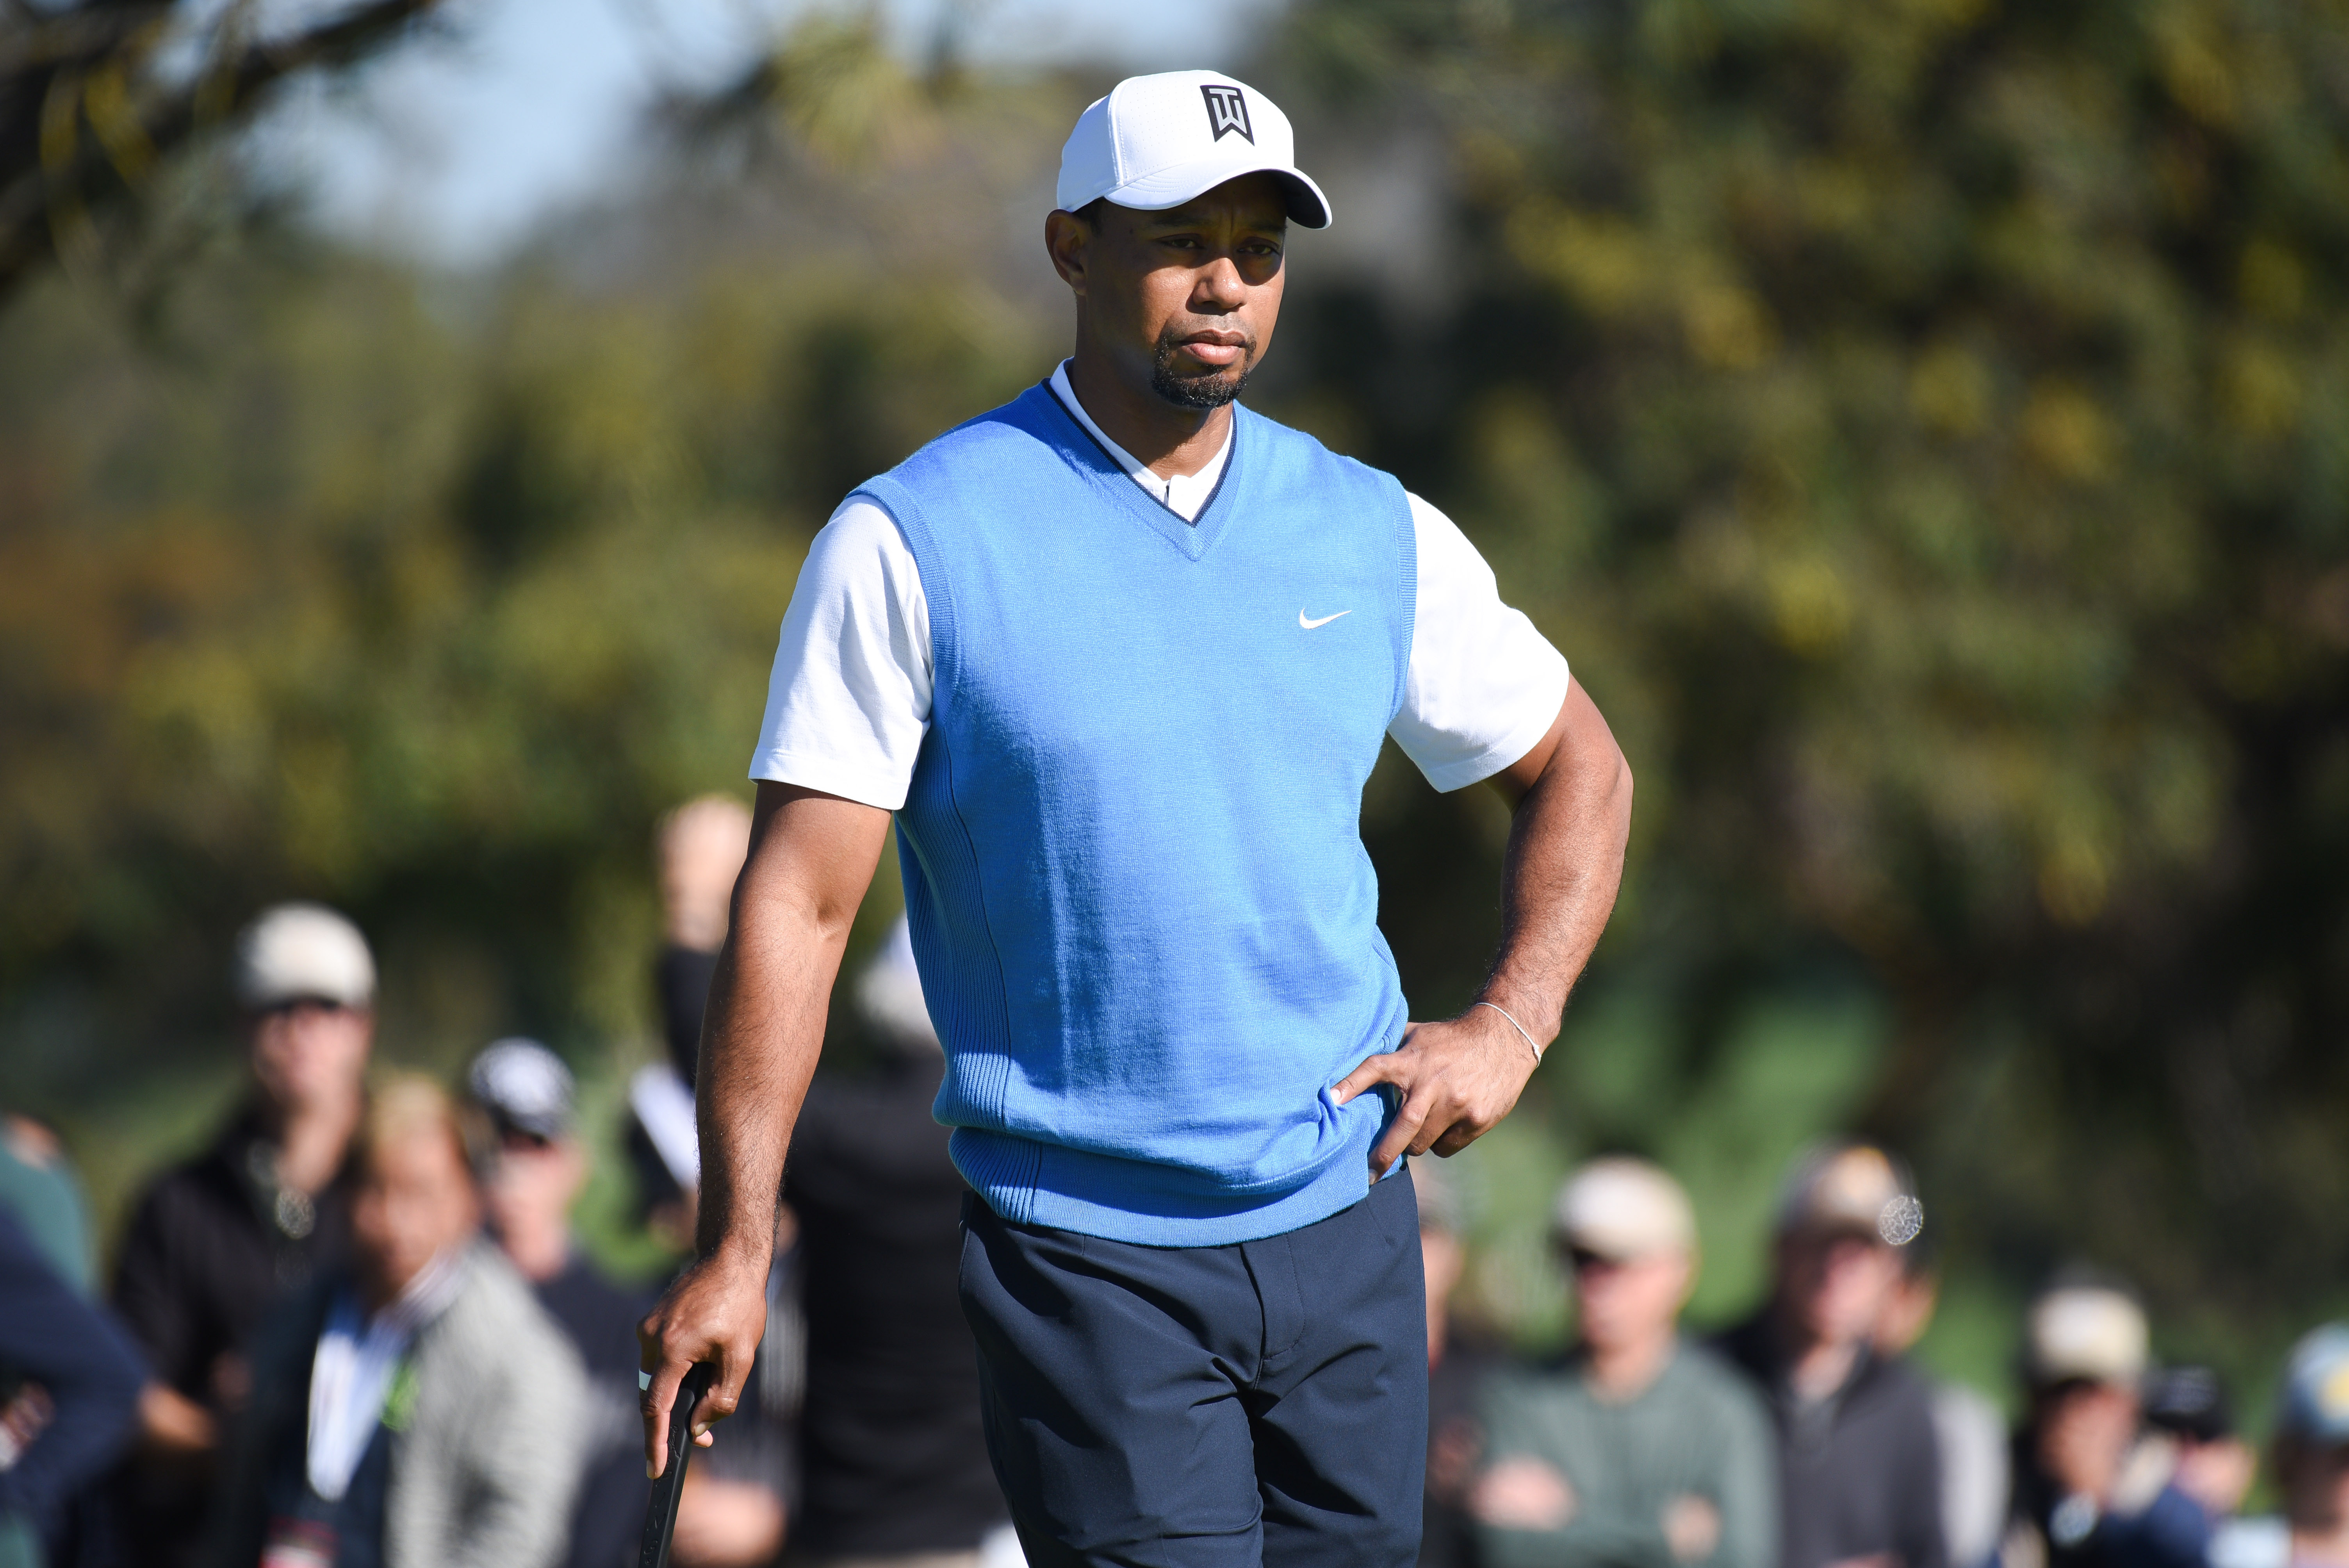 Tiger Woods during the first round of the 2017 Farmers Insurance Open at Torrey Pines.